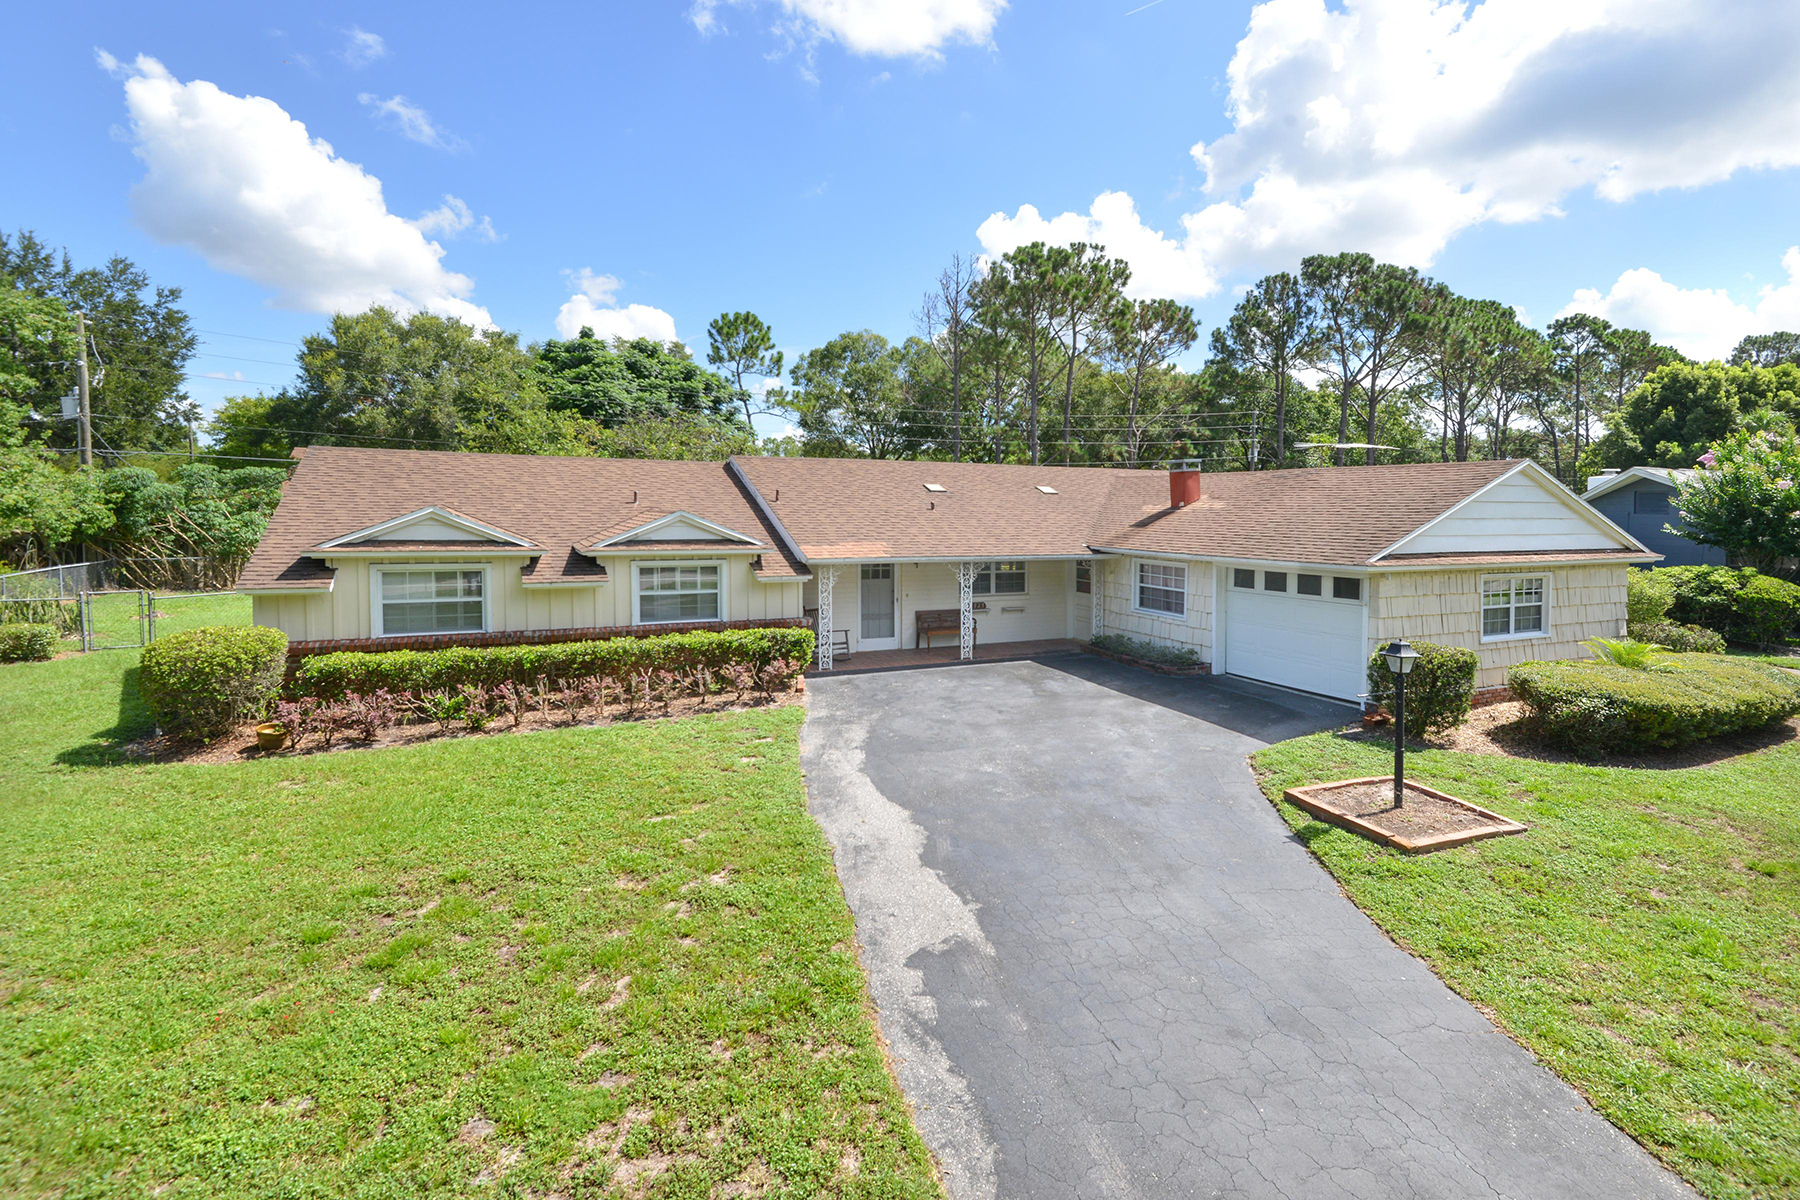 Single Family Home for Sale at ORLANDO - LAKE MARY 1929 Linden Rd Winter Park, Florida, 32792 United States